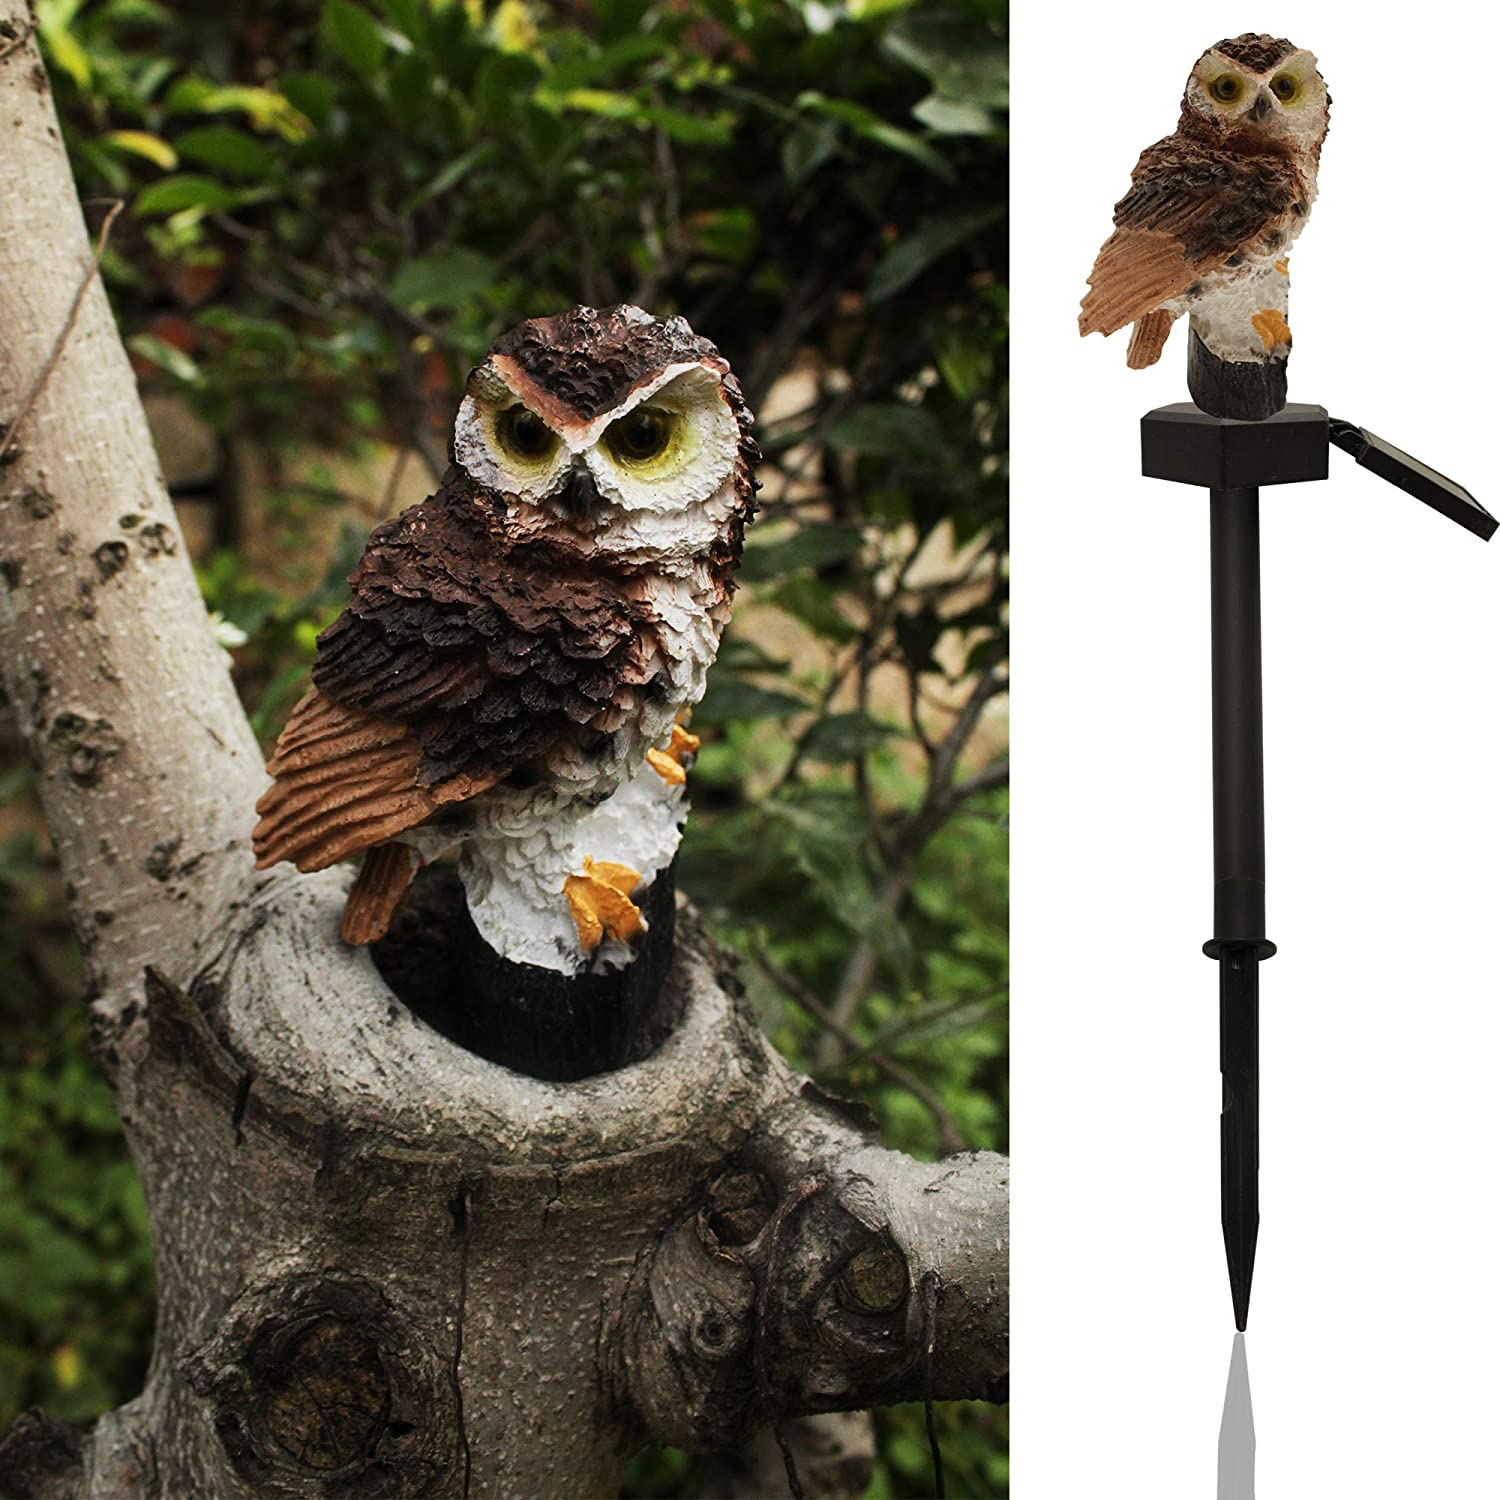 Solar Garden Lawn Light,Led Owl Shape Waterproof Outdoor Landscape Pathway Stake Light for Yard Patio Home Festival Decorative(Brown Owl)